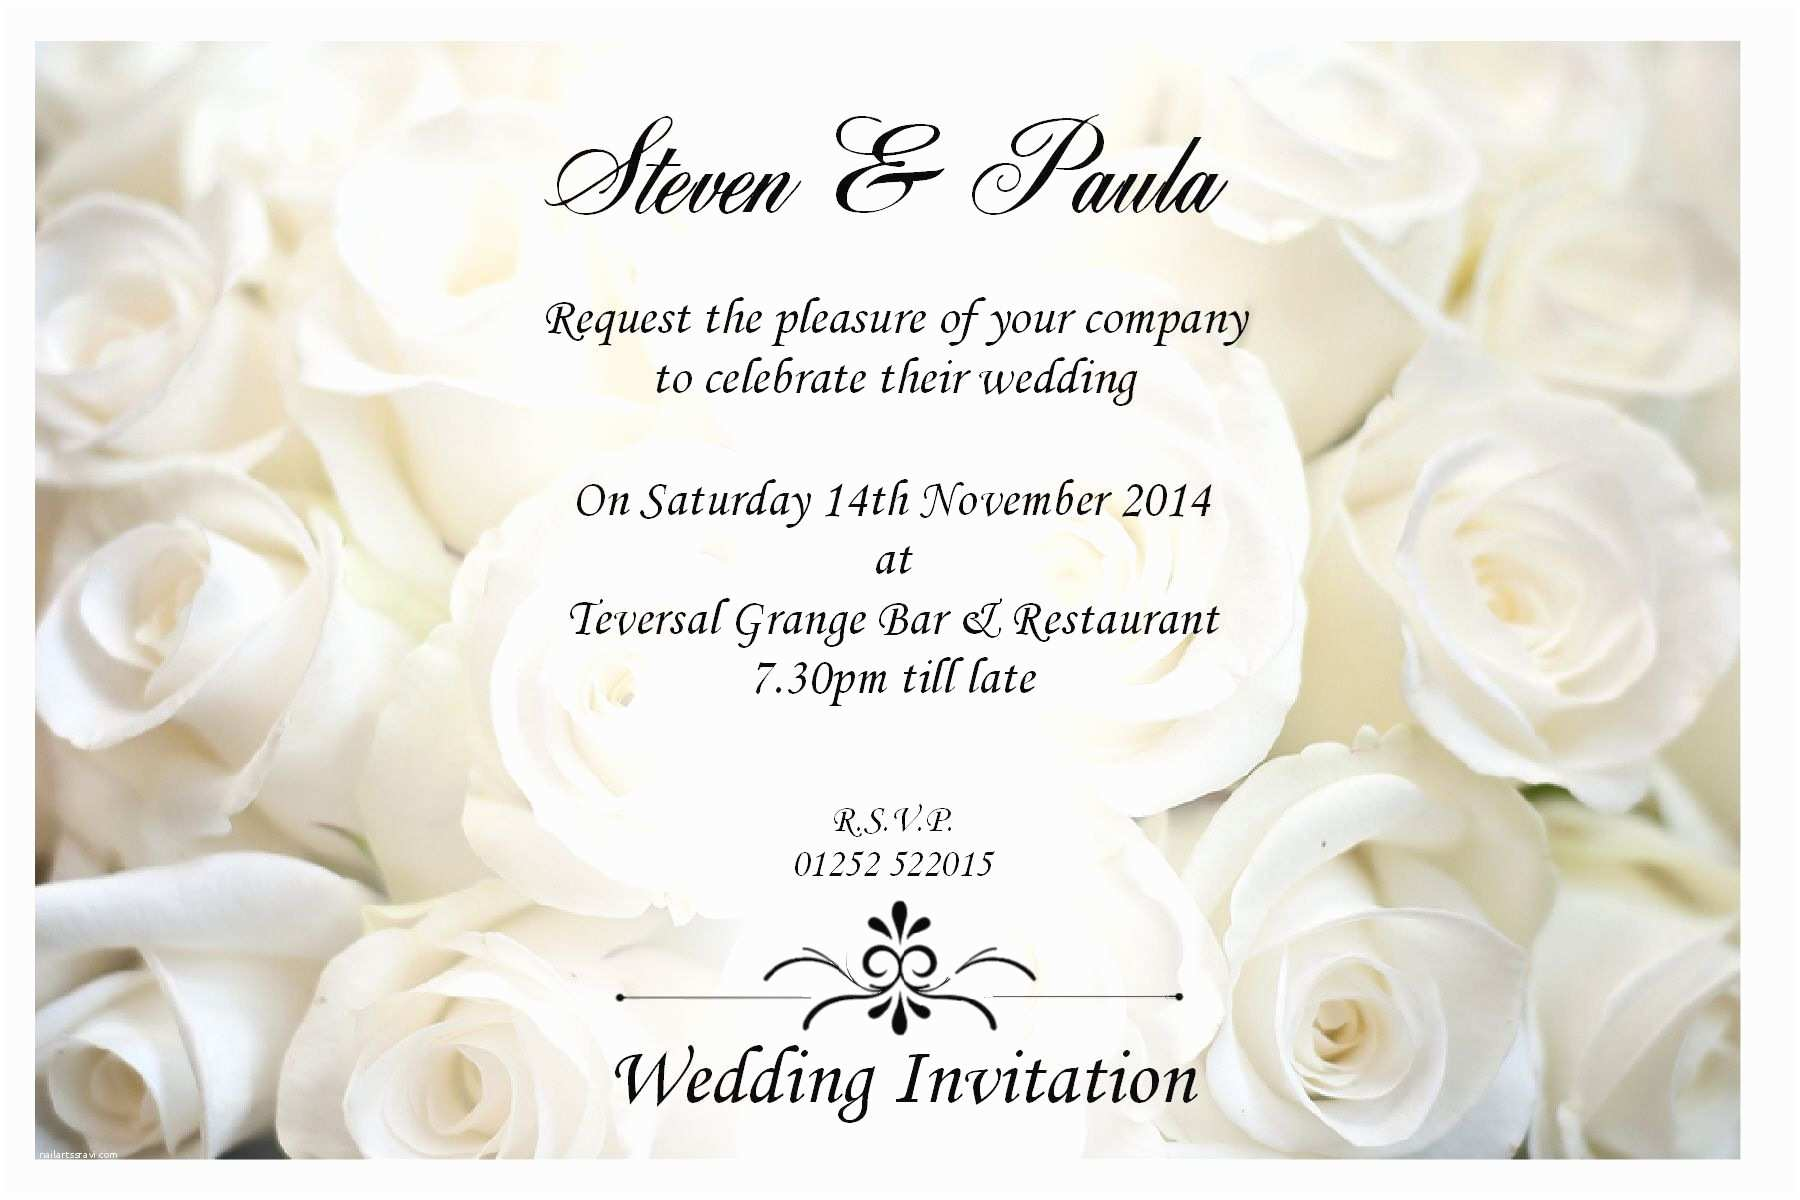 Best Place for Wedding Invitations Sample Wedding Invitation by Email